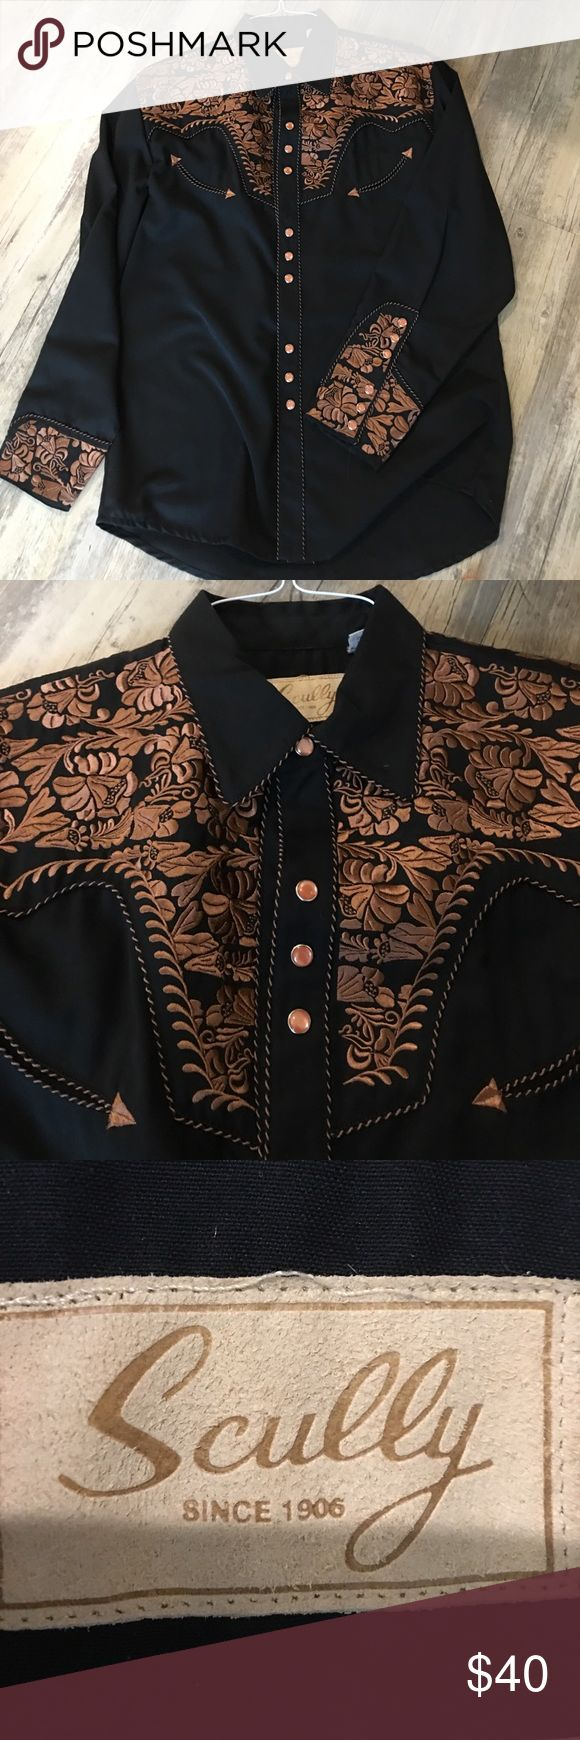 Men's Scully Pearl Snap Shirt Authentic Scully Men's Pearl Snap Shirt- size M- almost new- worn a few times- in beautiful shape! Scully Shirts Dress Shirts